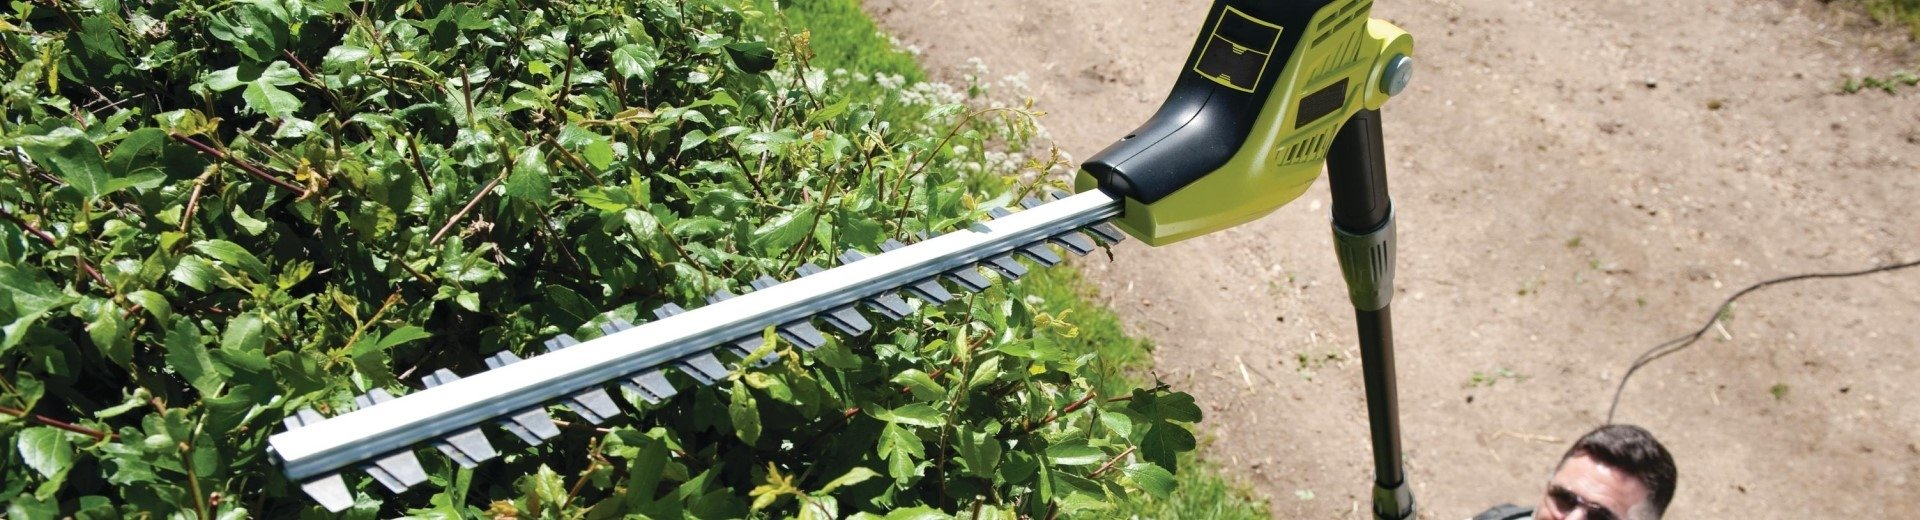 Best Pole Hedge Trimmers